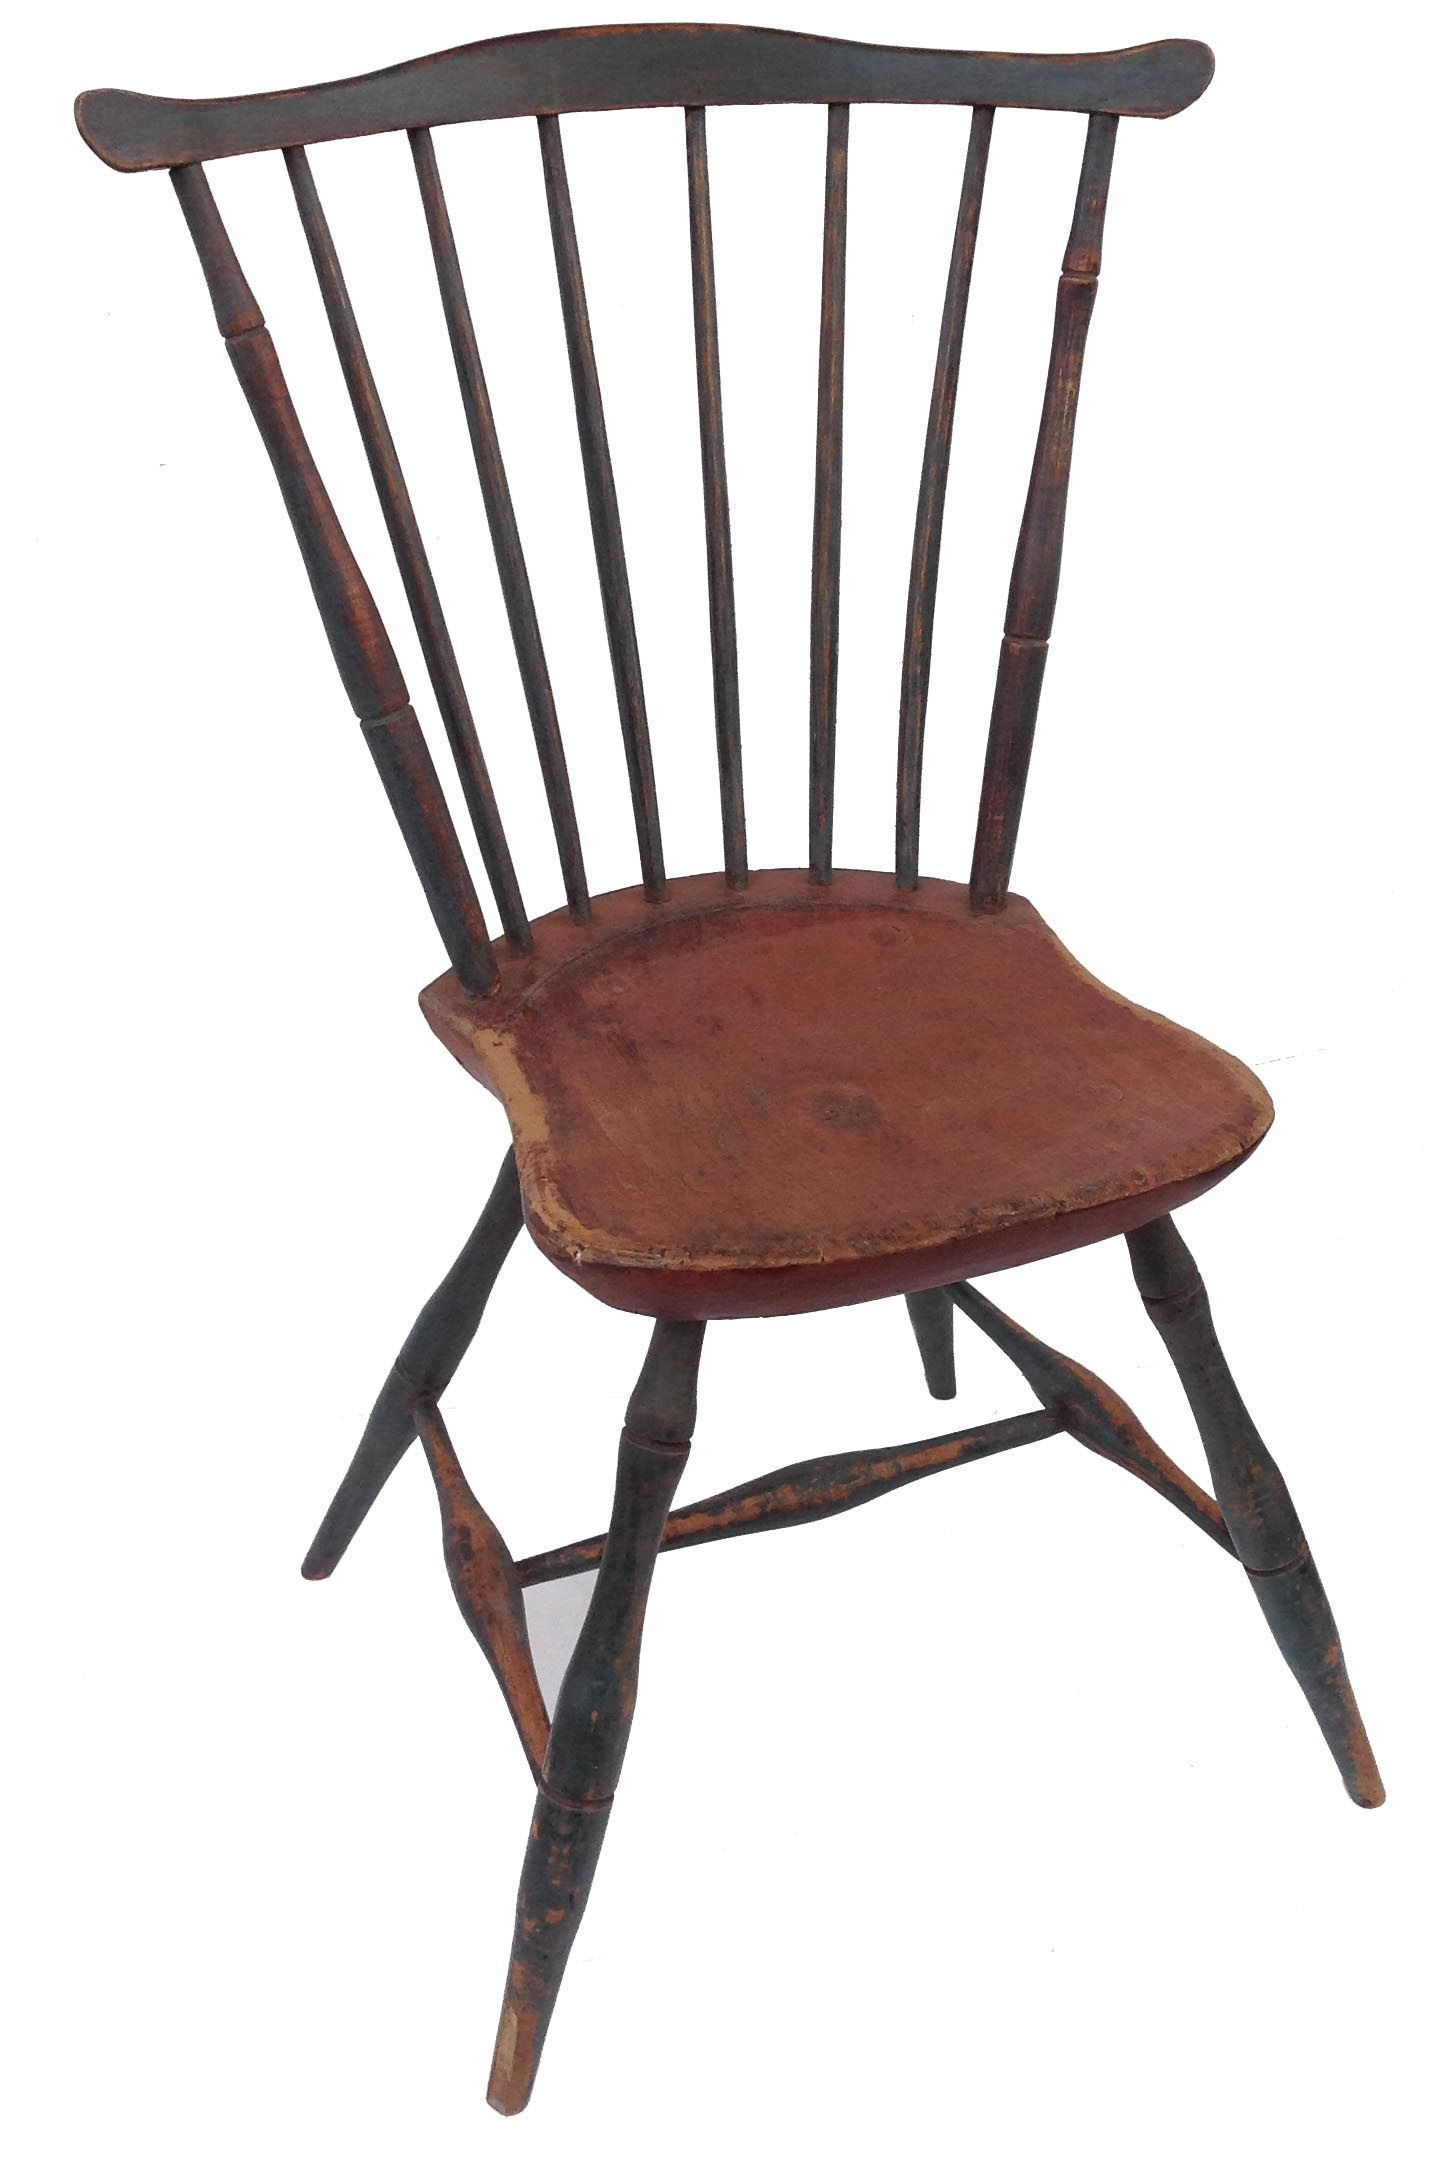 Early 19th Century New England Fan Back Windsor Chair With The Original Blue  And Red Paint